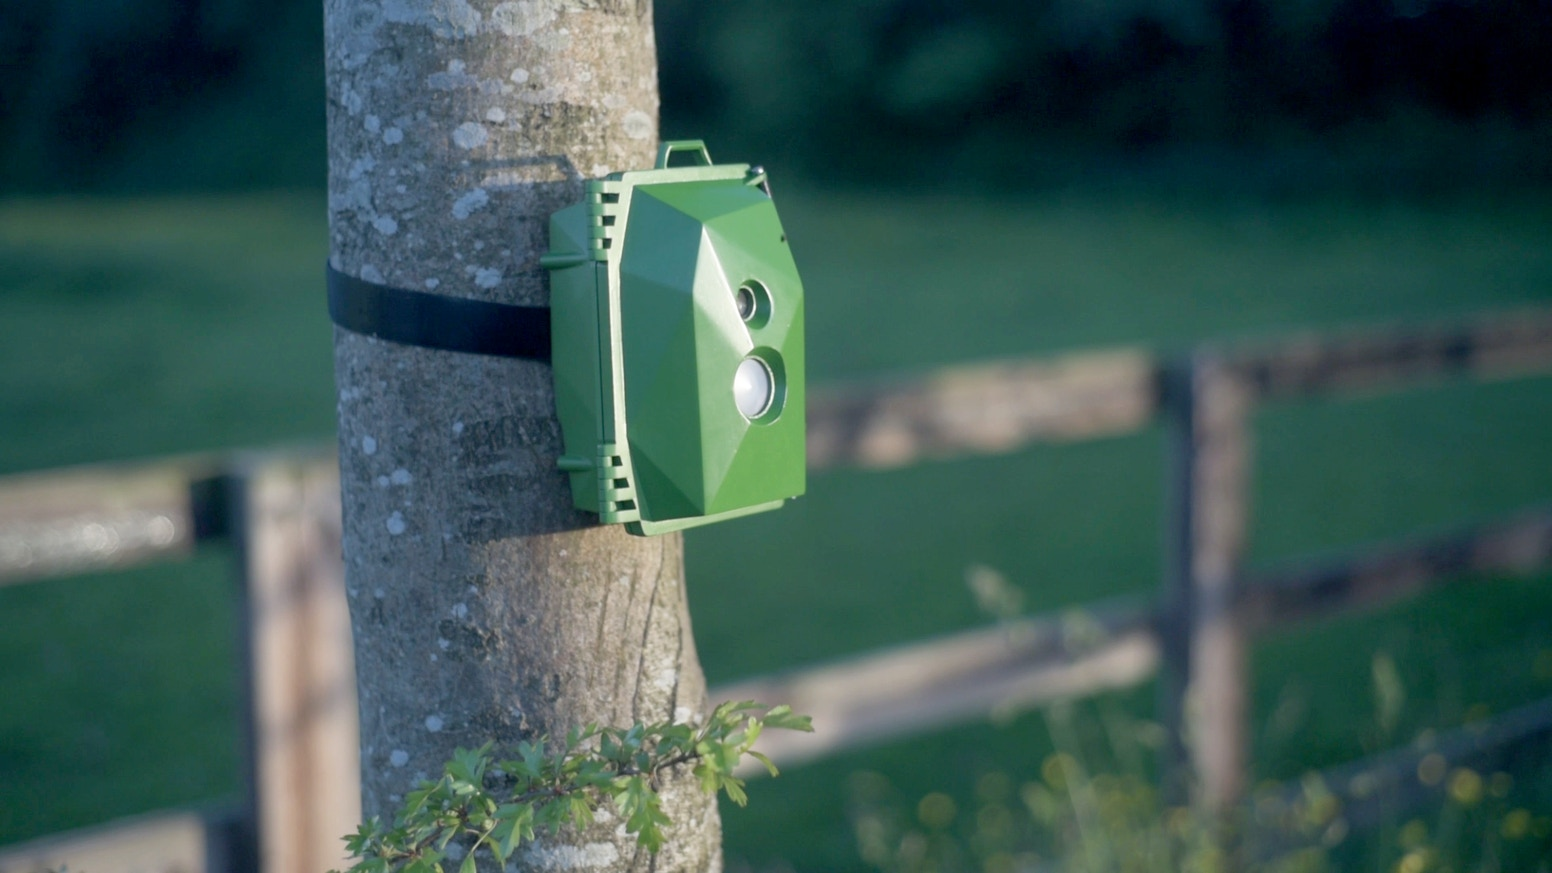 Build your own Pi-powered wildlife camera to capture stunning photos & video and help monitor wildlife as a community of digital makers.